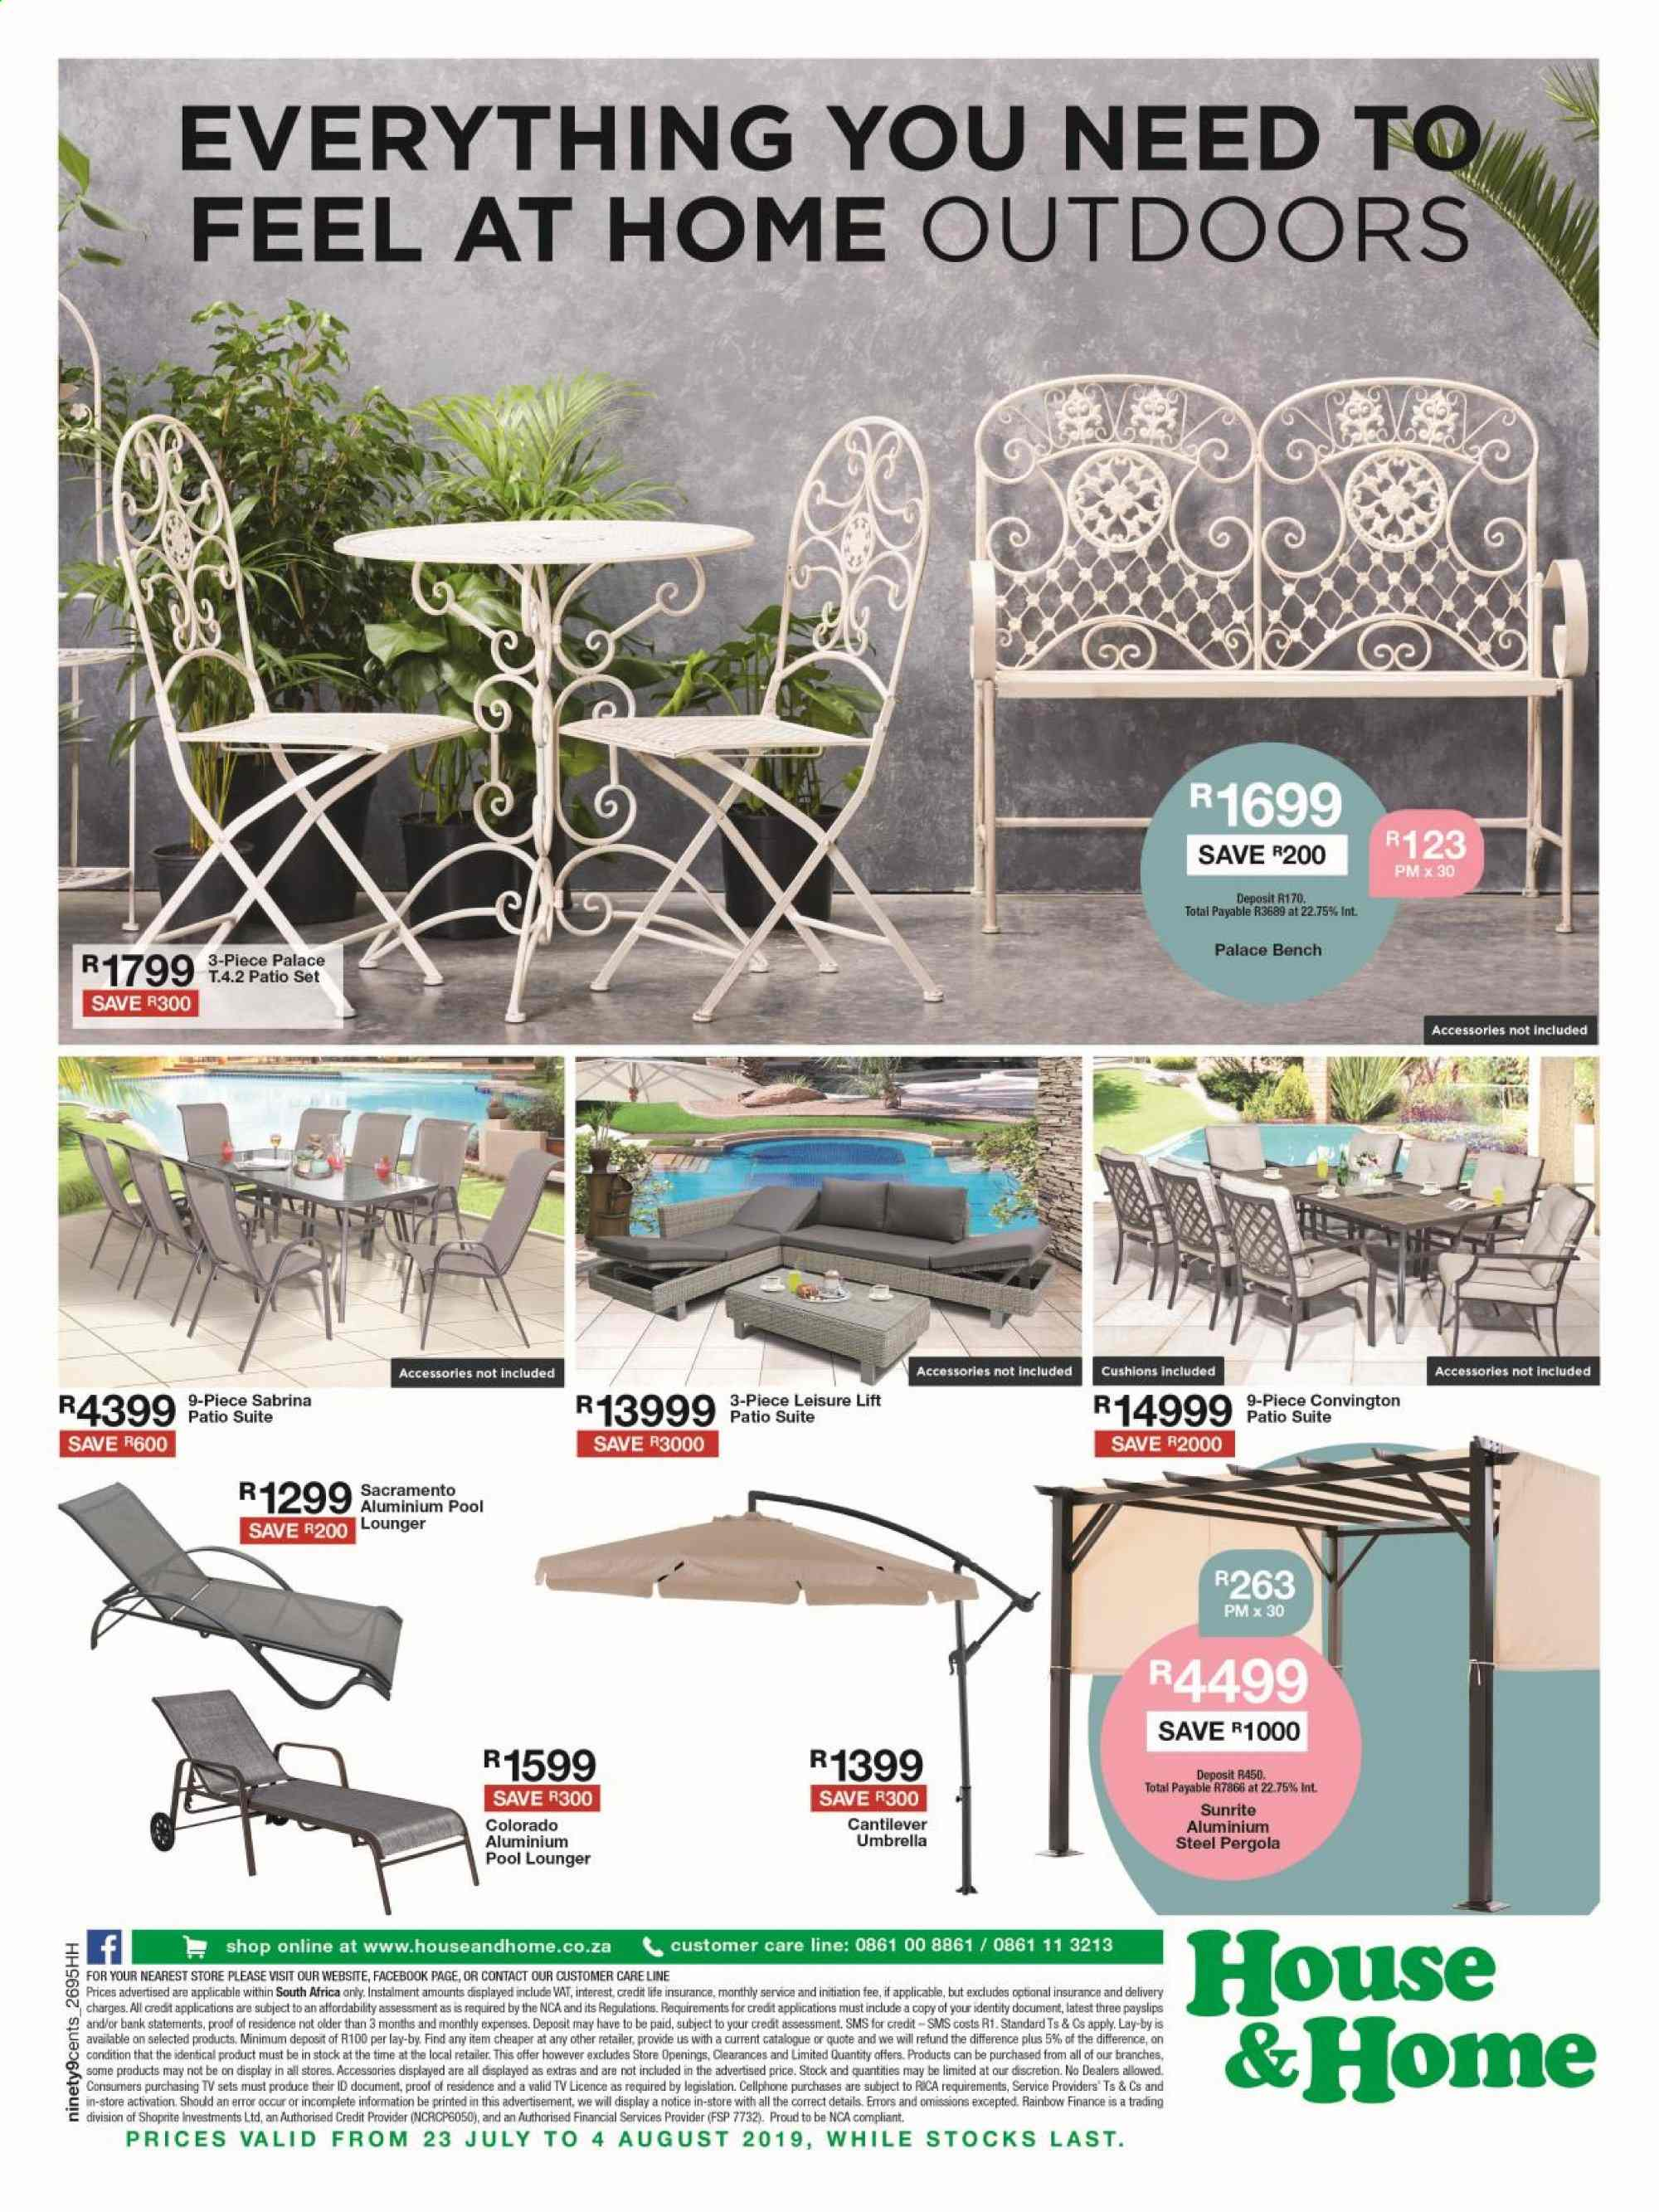 House & Home catalogue  - 07.23.2019 - 08.04.2019. Page 12.